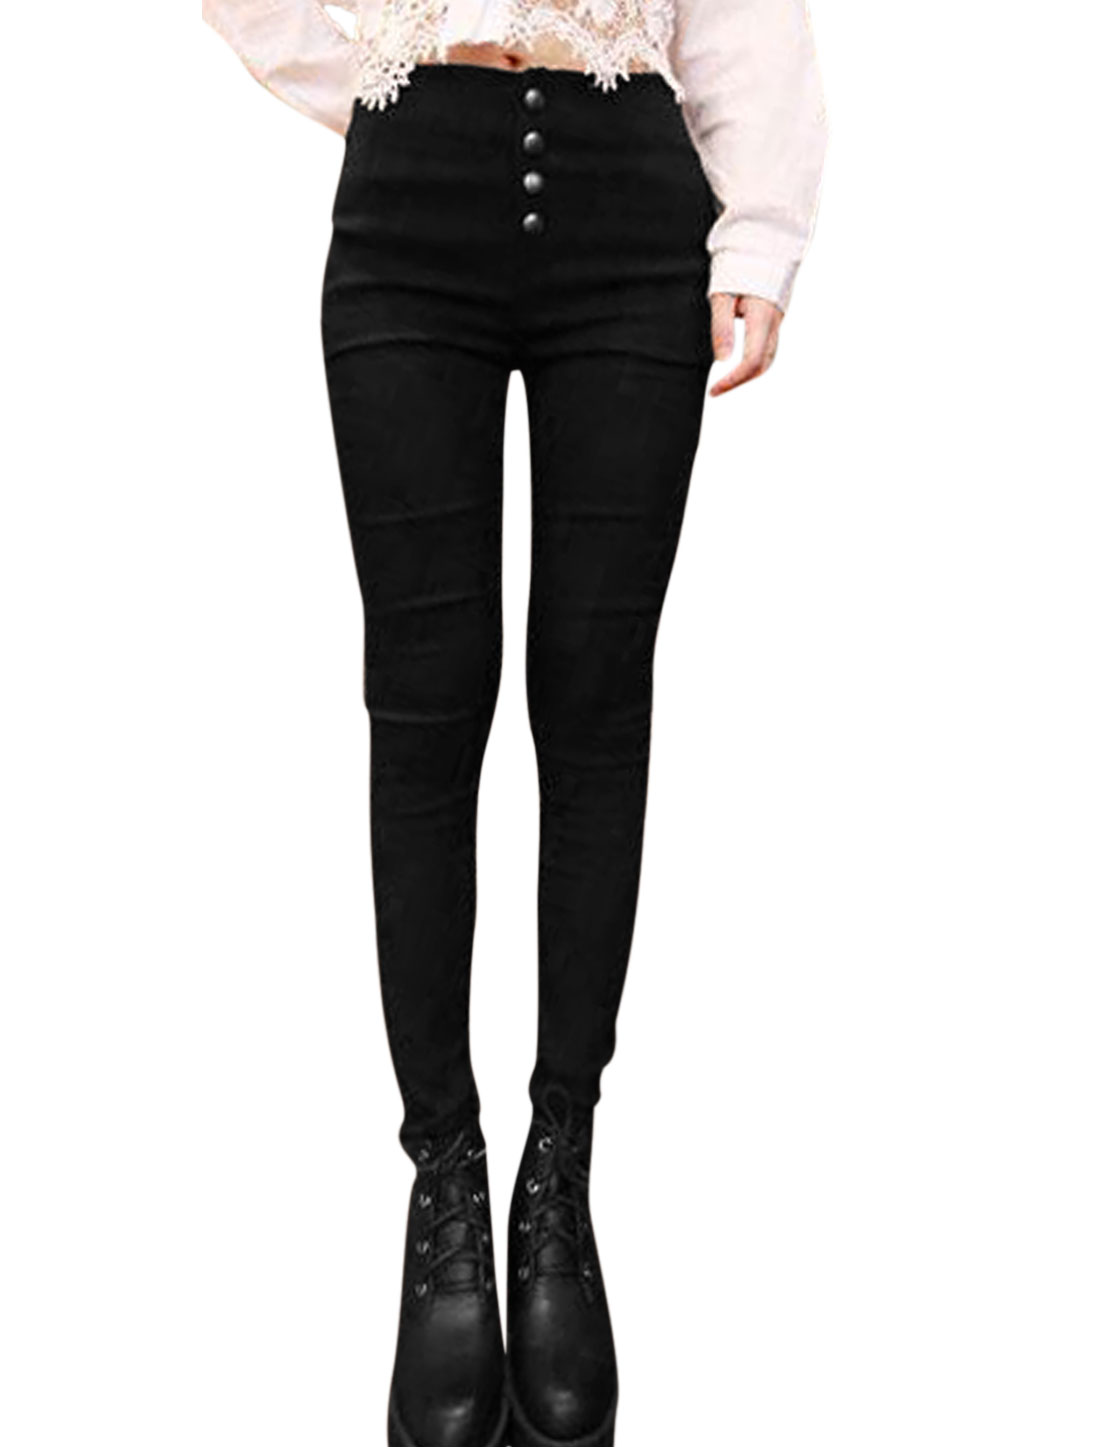 Women Button Closure High Waist Skinny Casual Pencil Pants Black XS